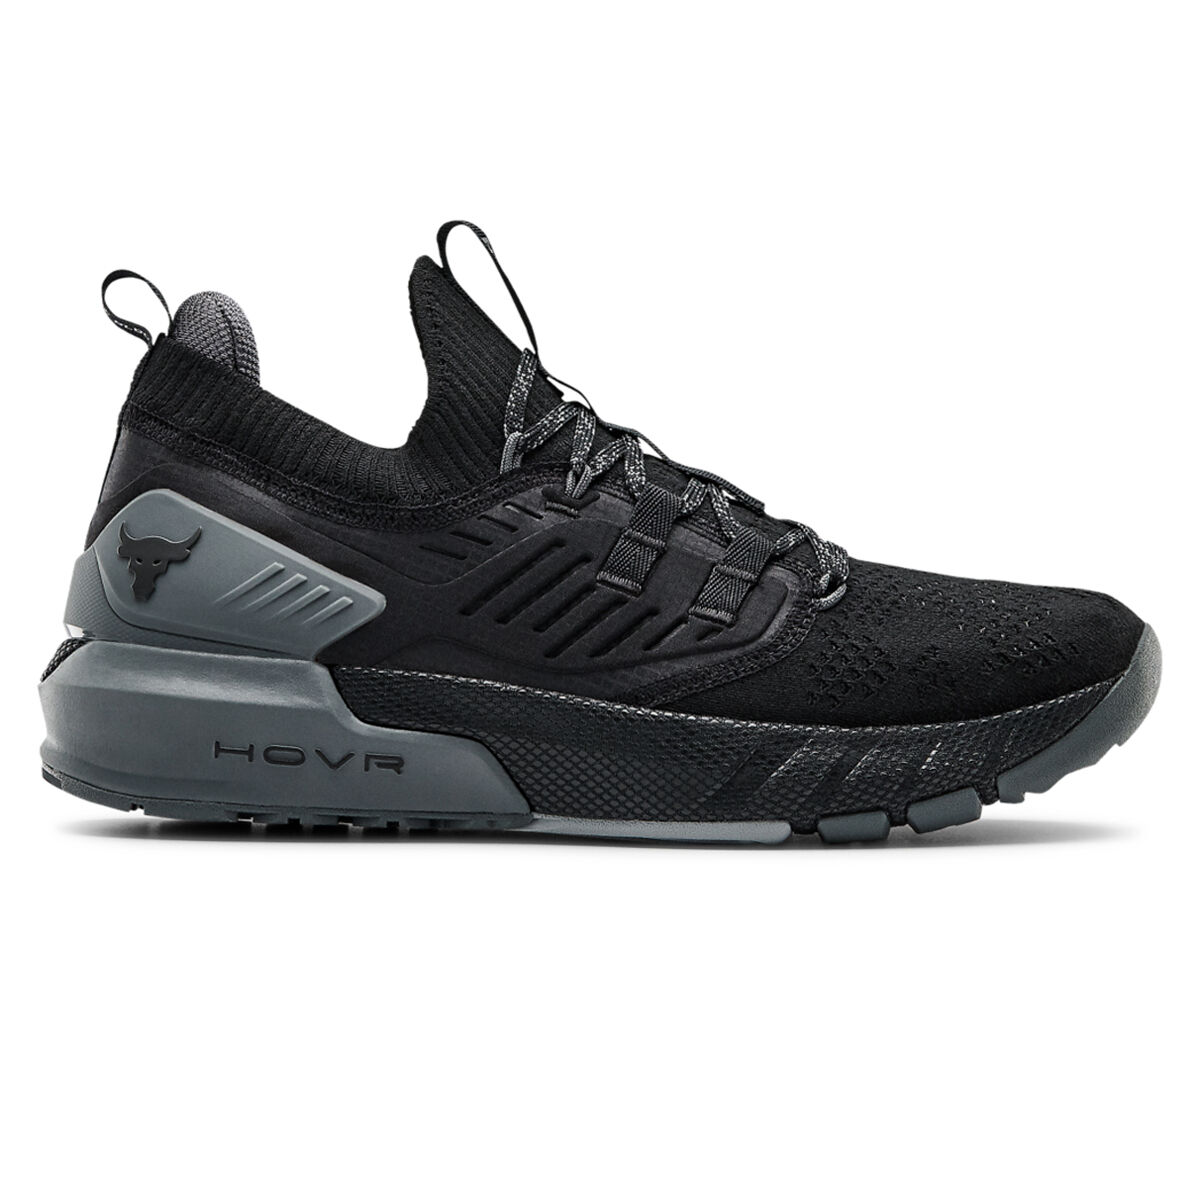 Under Armour Project Rock 3 Mens